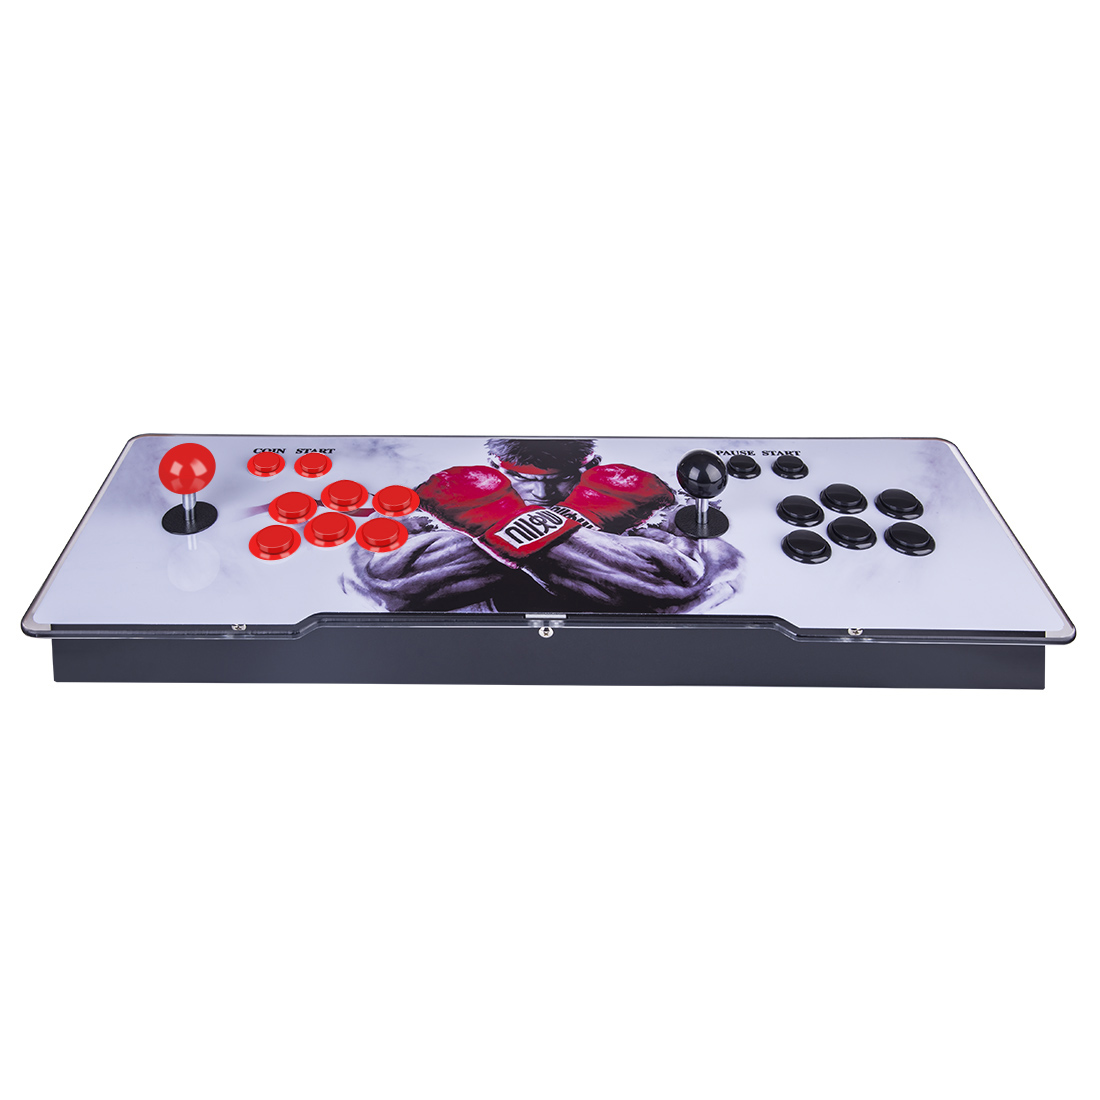 Pandora Box 3D 12S Wifi Version 2650 Games Multi-player Arcade Game Console, Can Download More Games (Black Red Keyboard)